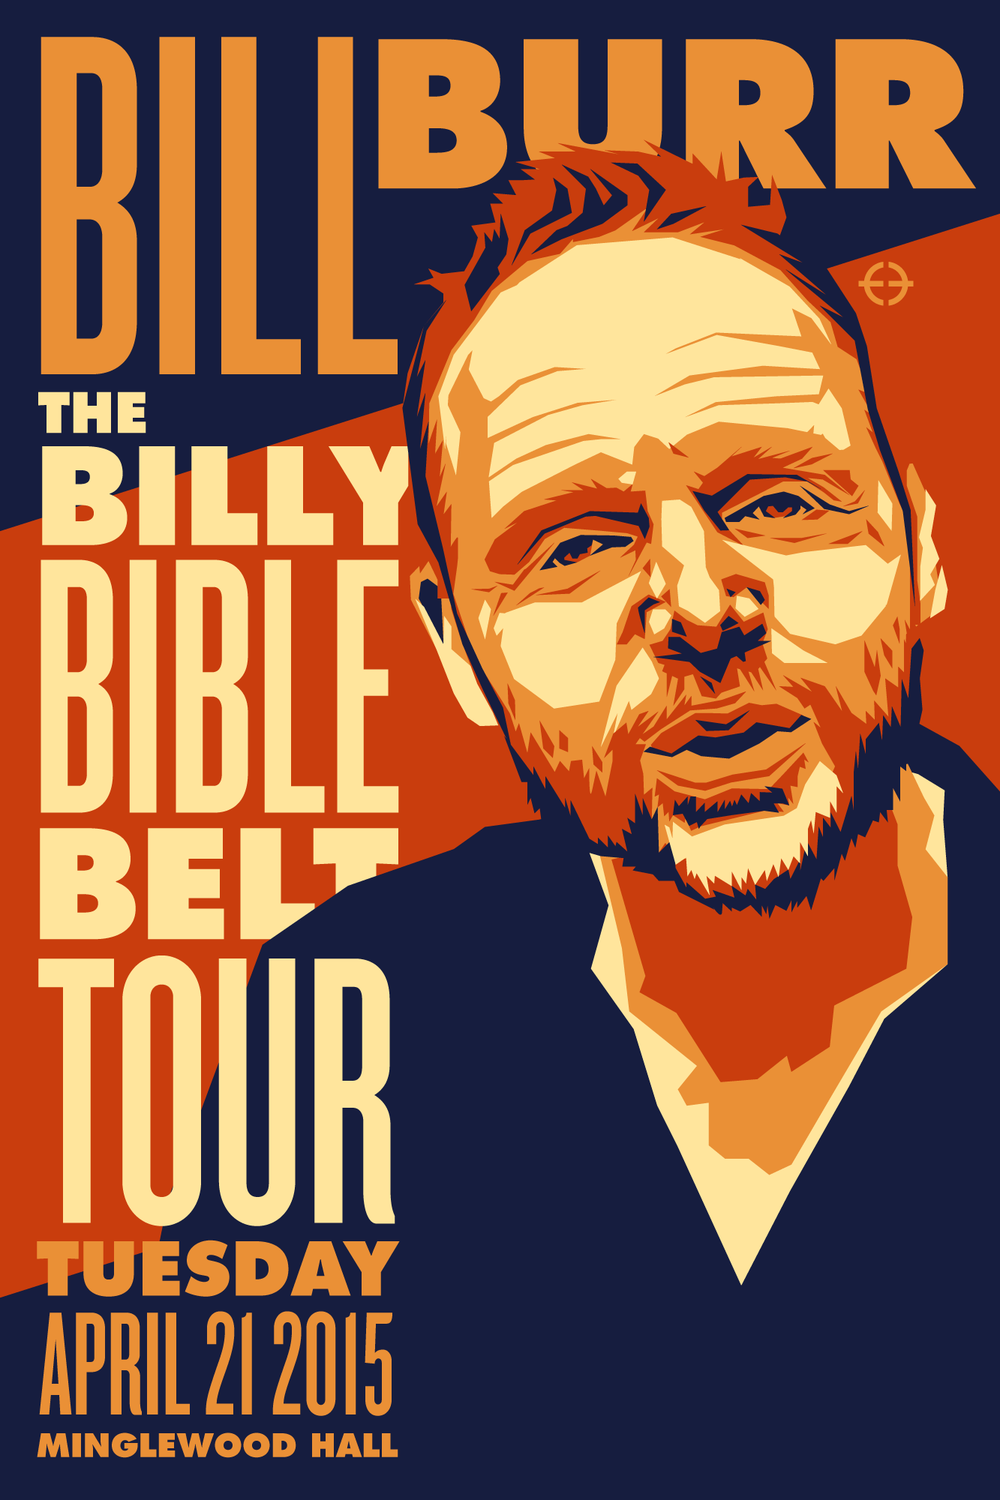 bill_burr_minglewood_april2015-web.png